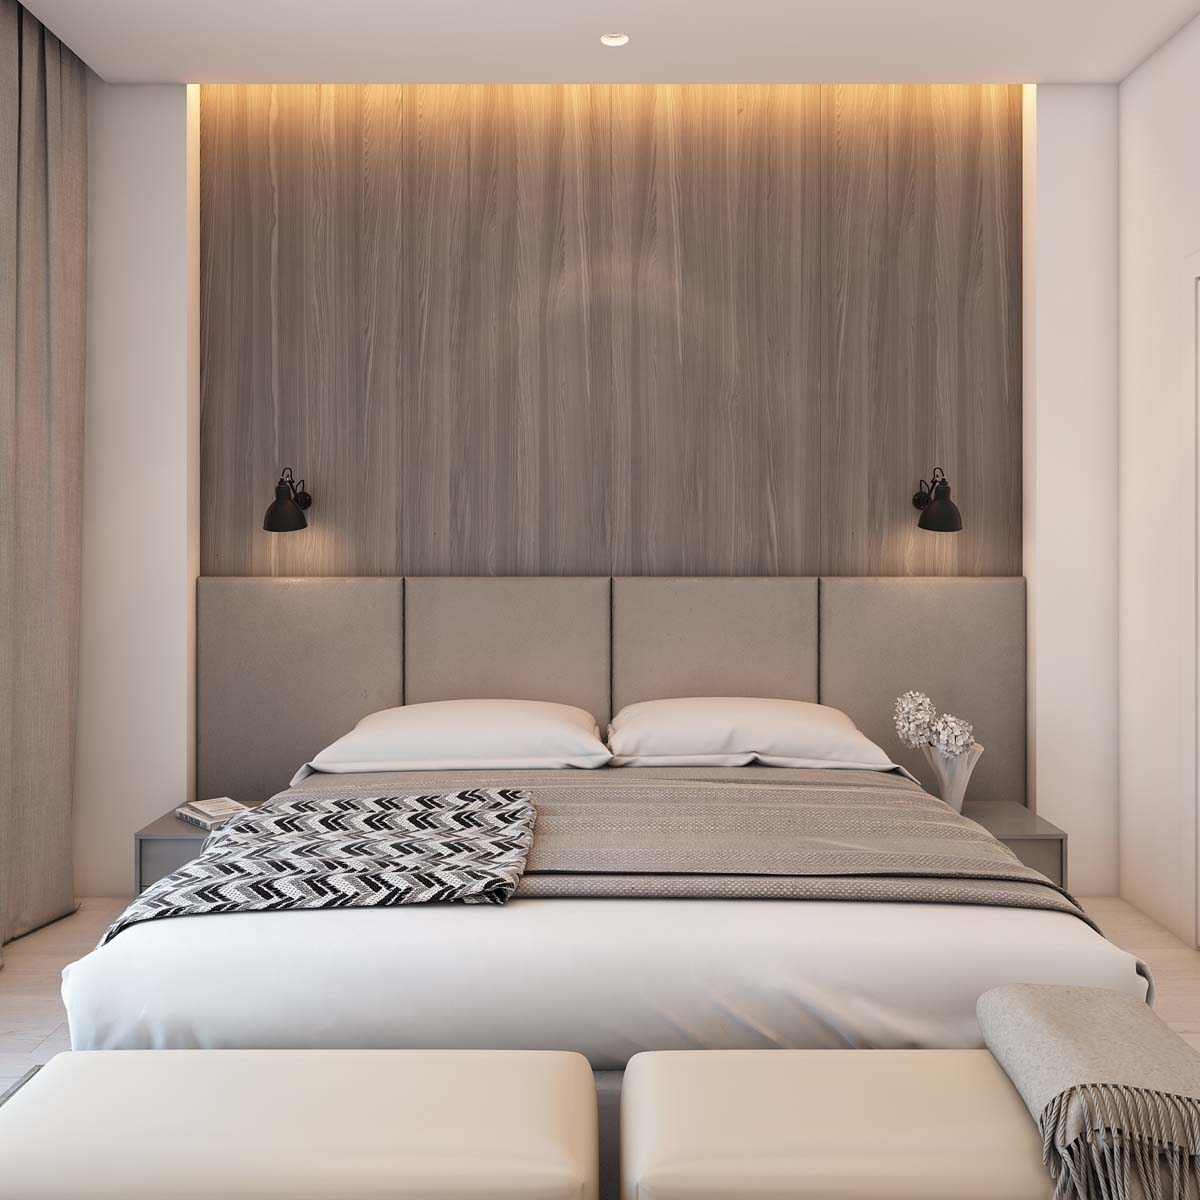 Natural Wood Headboard - A simple modern apartment in moscow